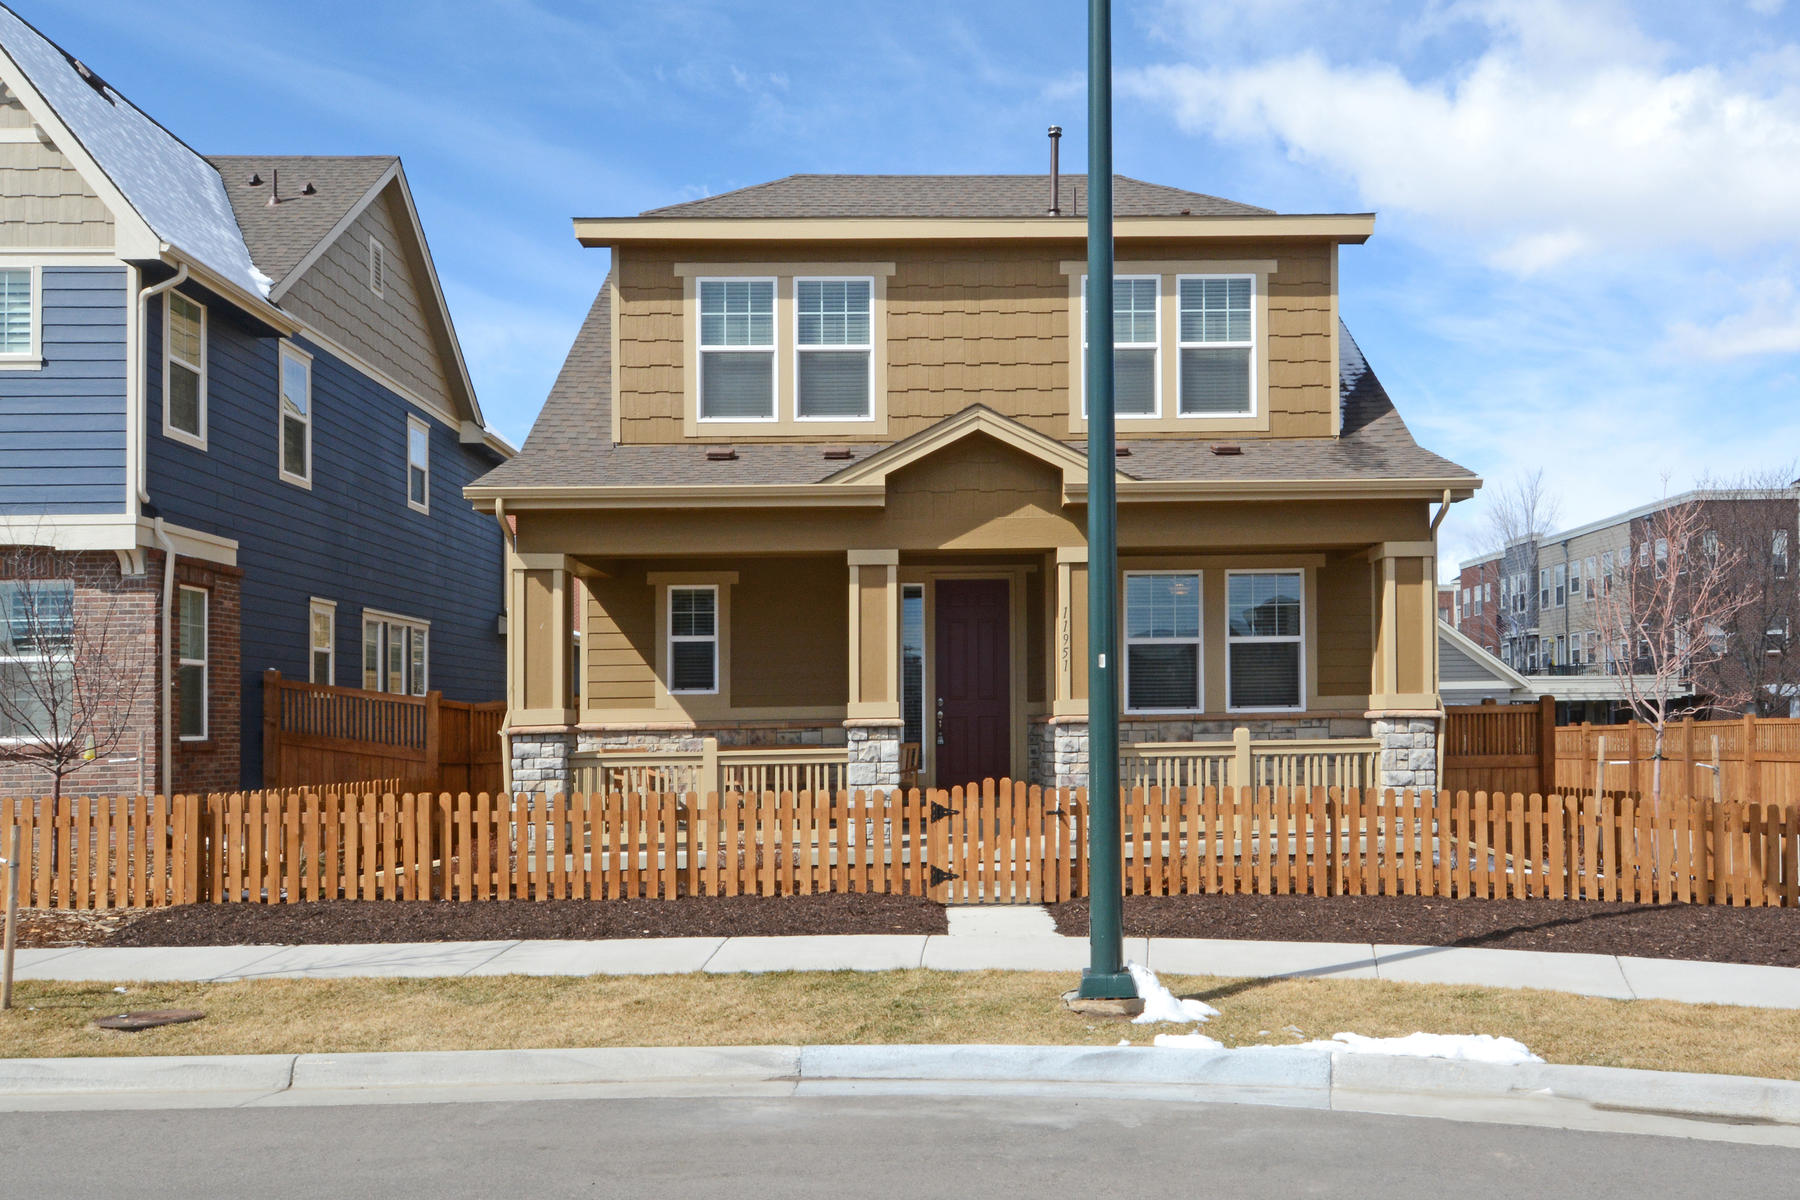 Single Family Home for Active at Pottery Barn Perfect! 11951 Meade Court Westminster, Colorado 80031 United States